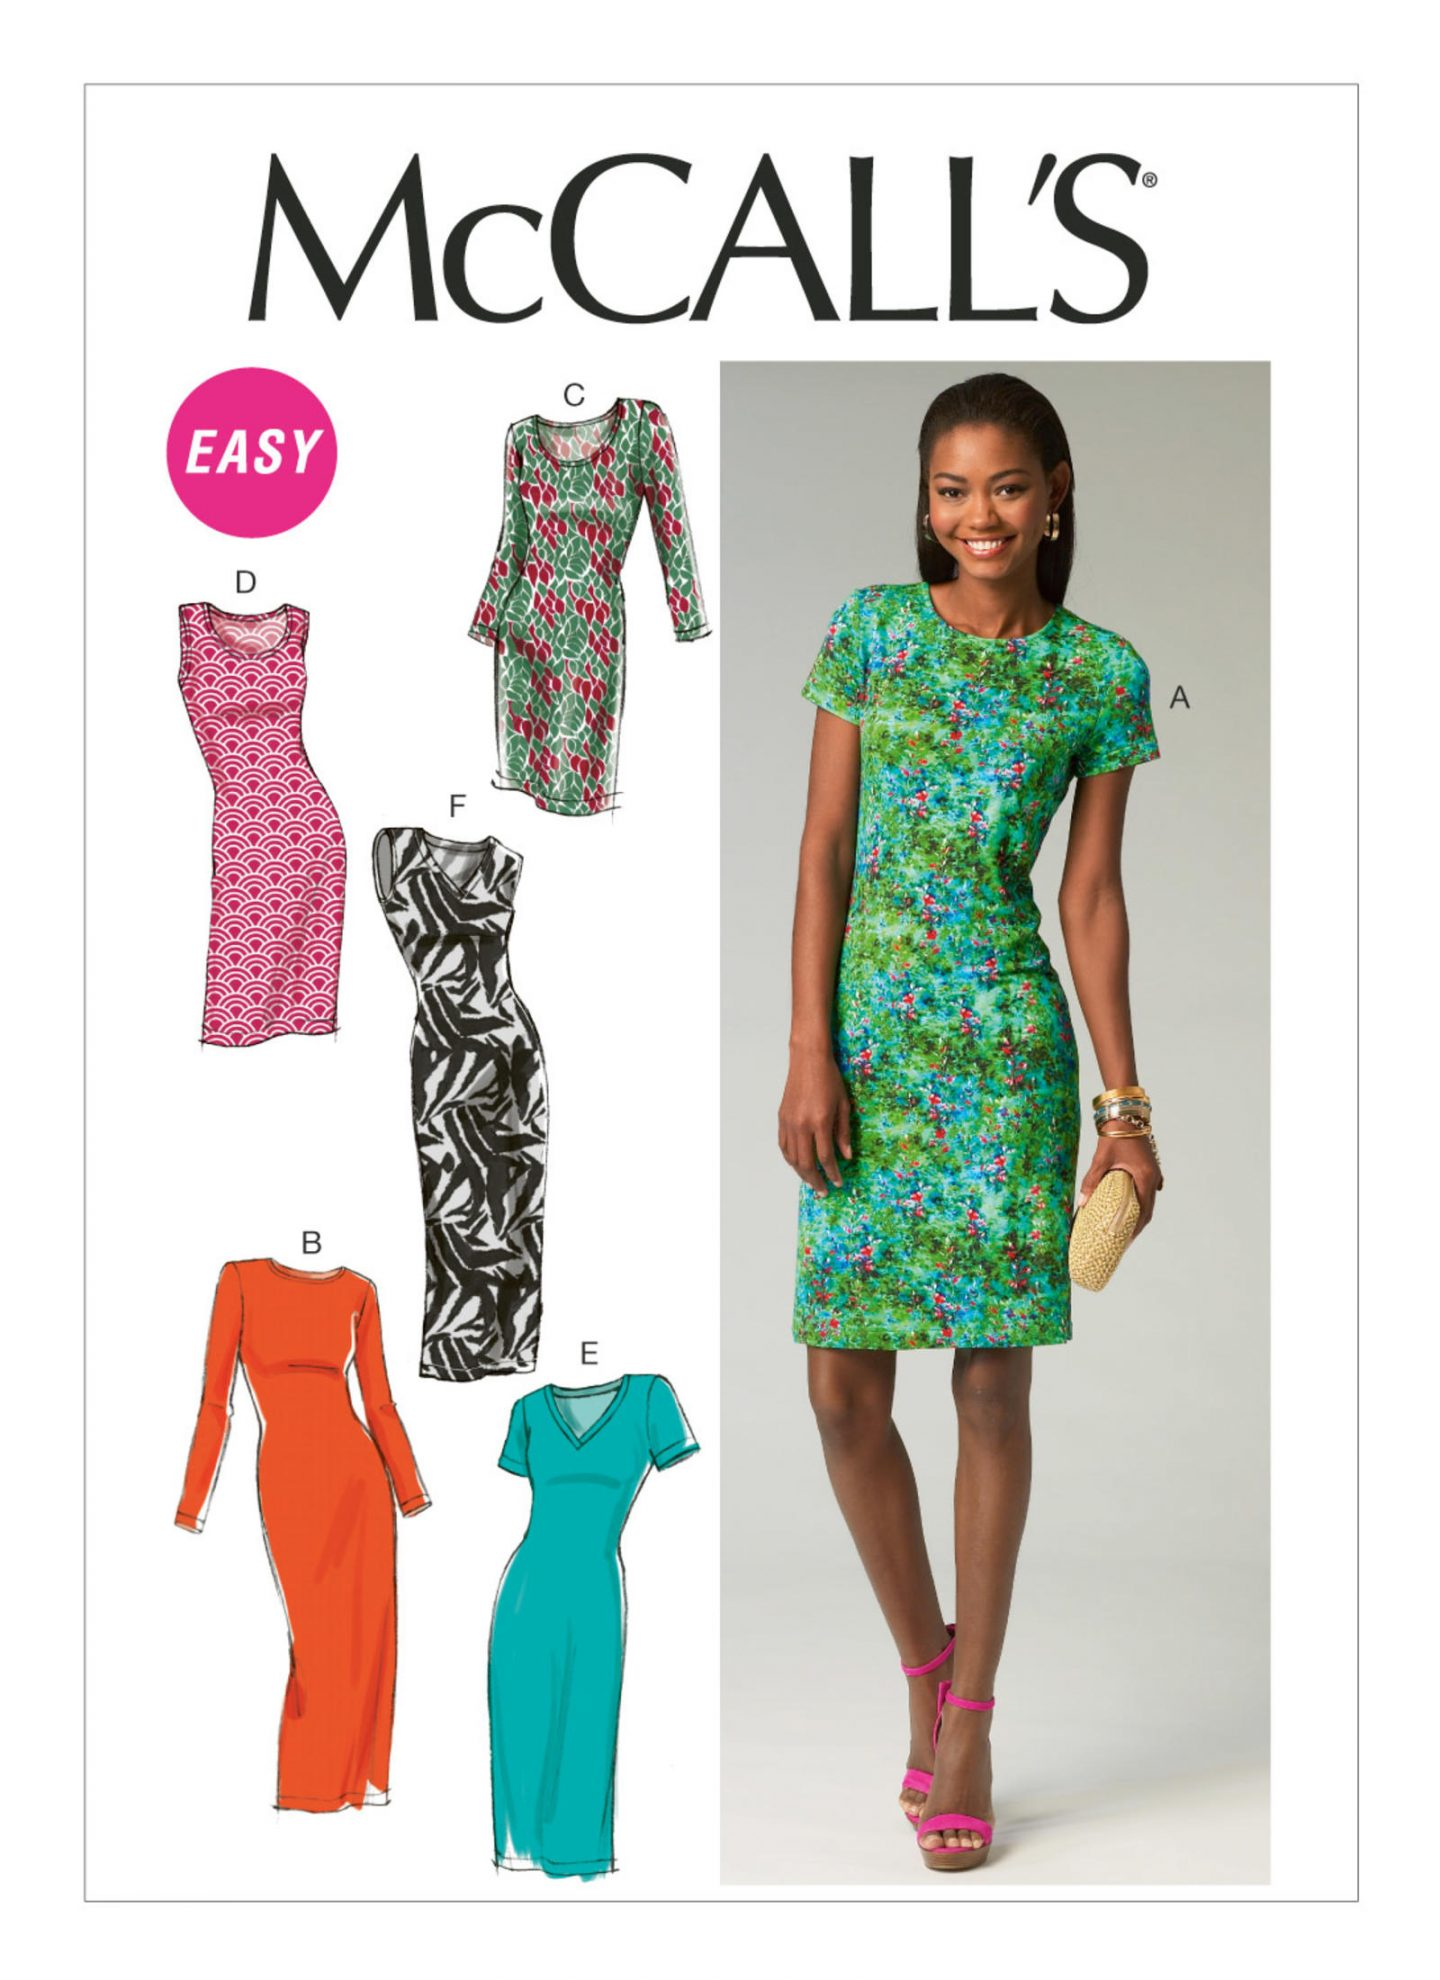 Long sleeved tee with a twist. McCalls 6886